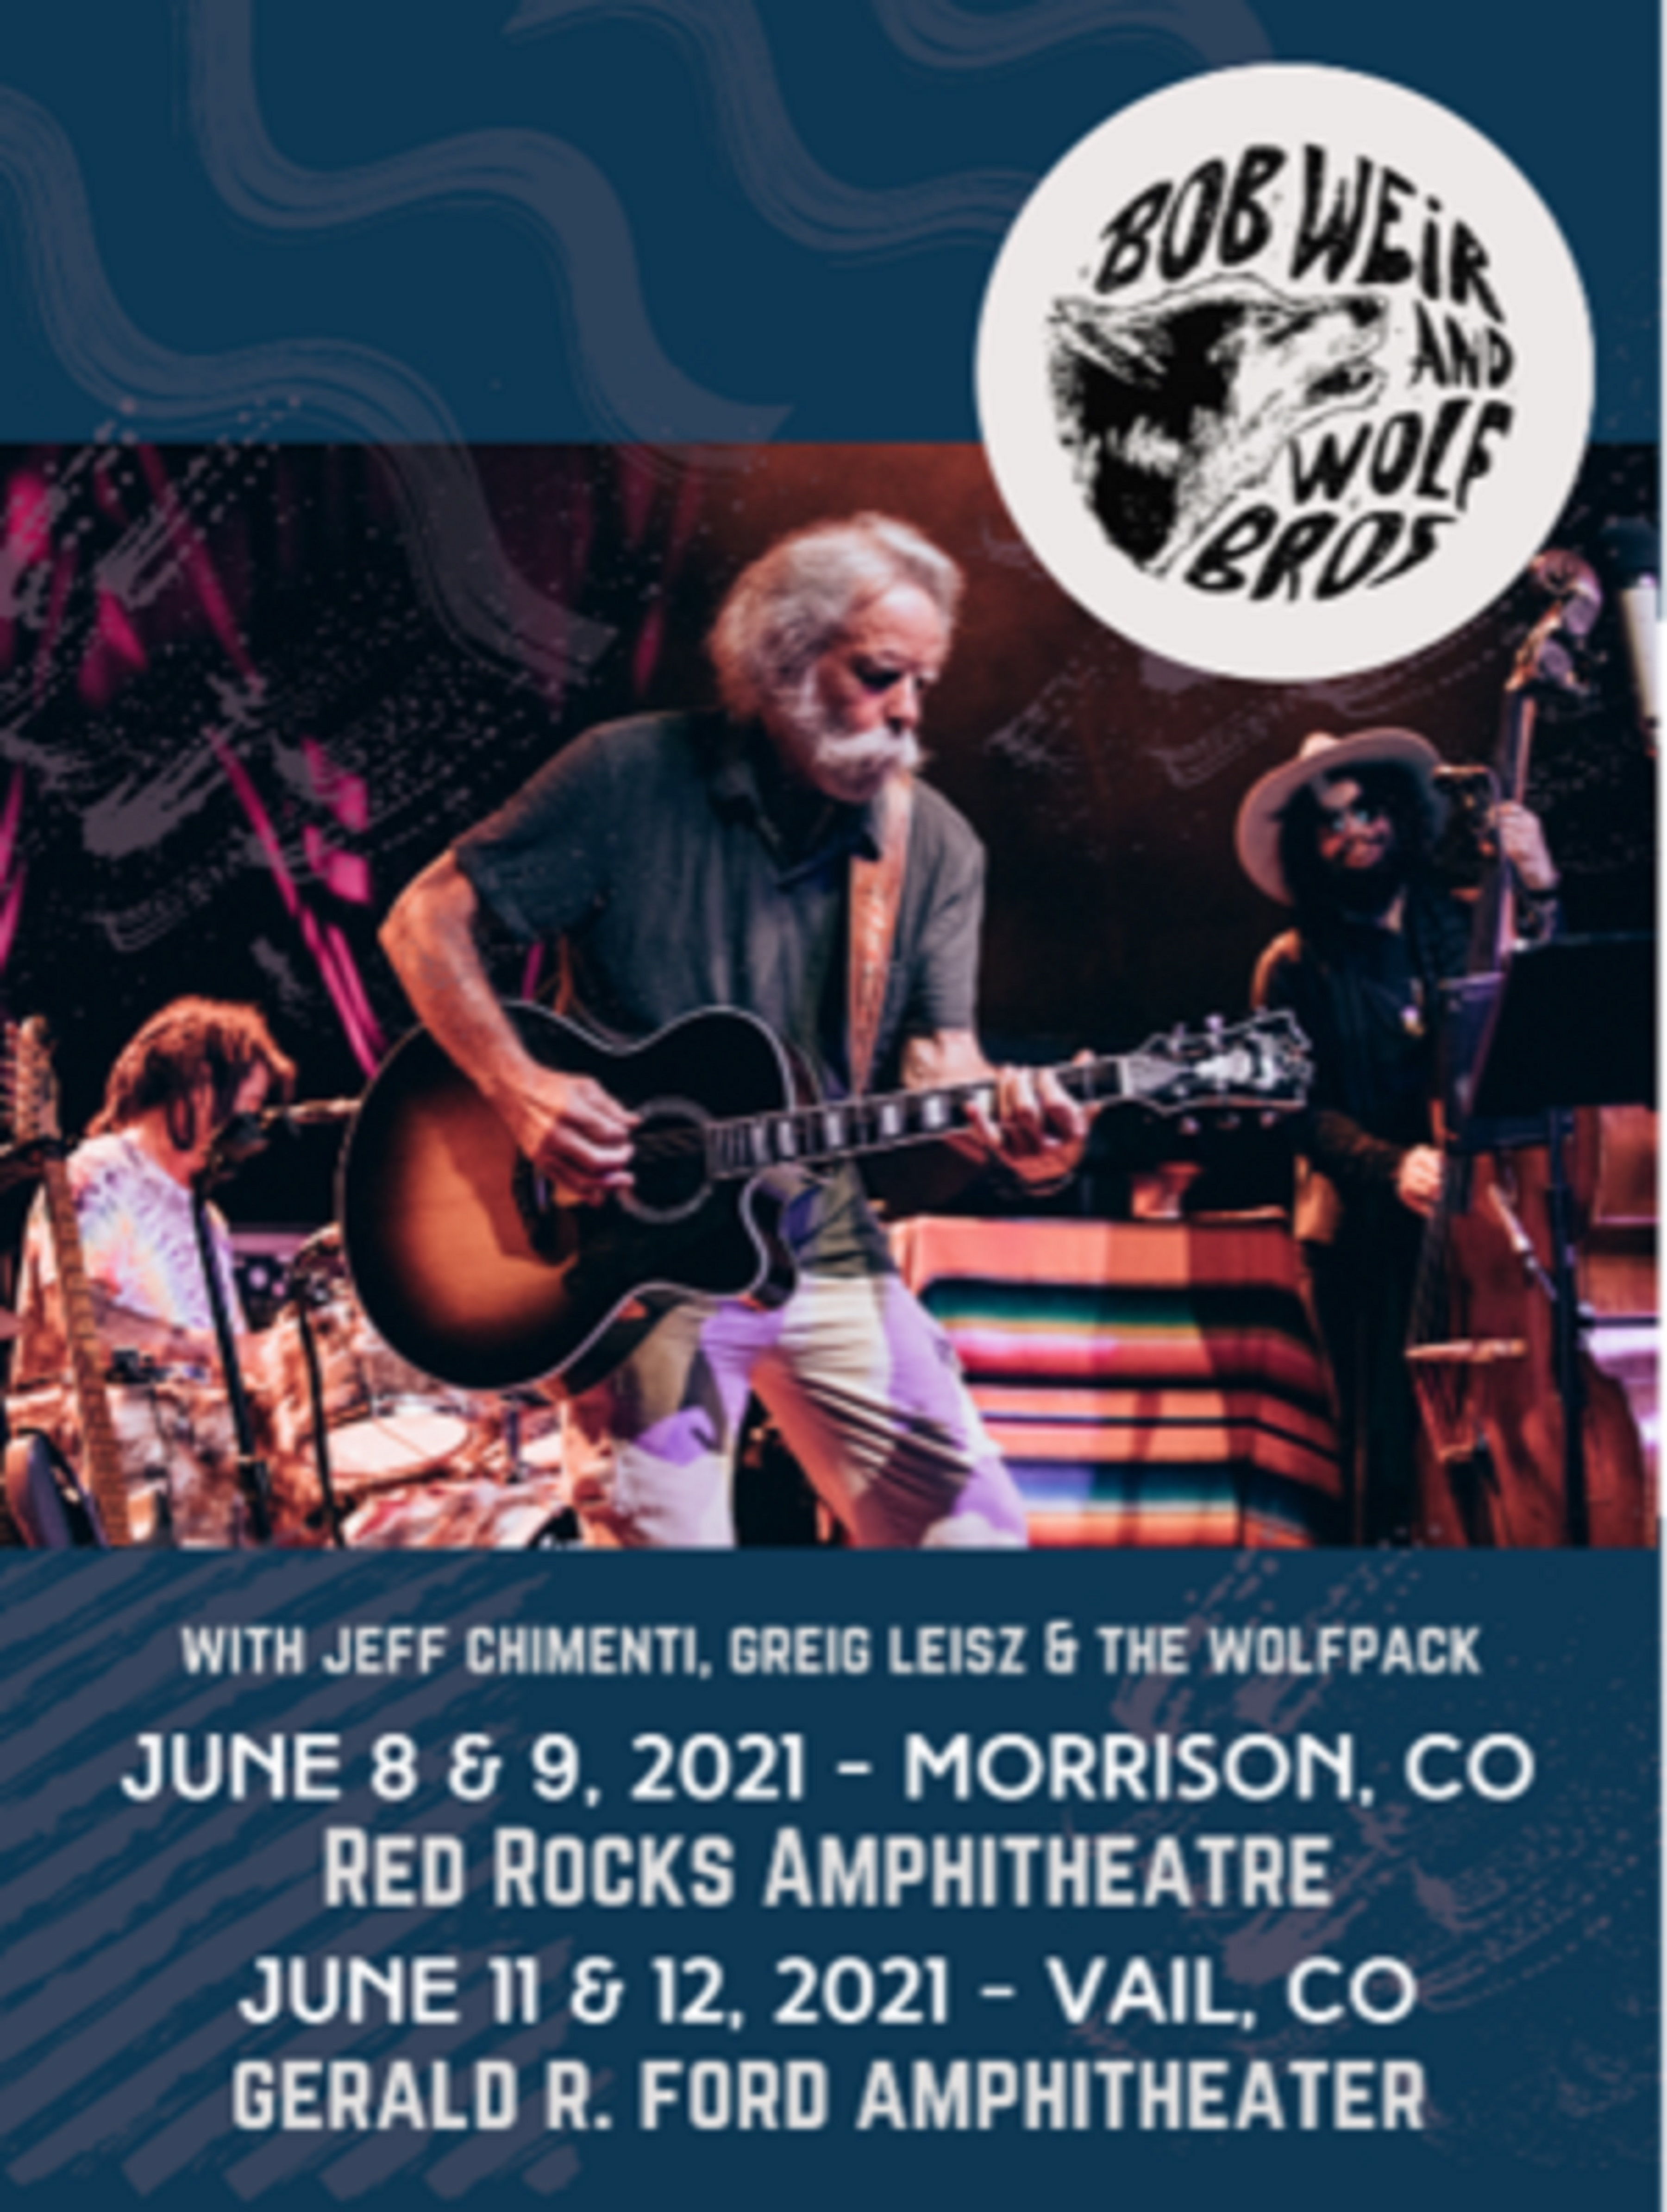 Bob Weir and Wolf Bros confirm Red Rocks Amphitheatre + Vail CO dates